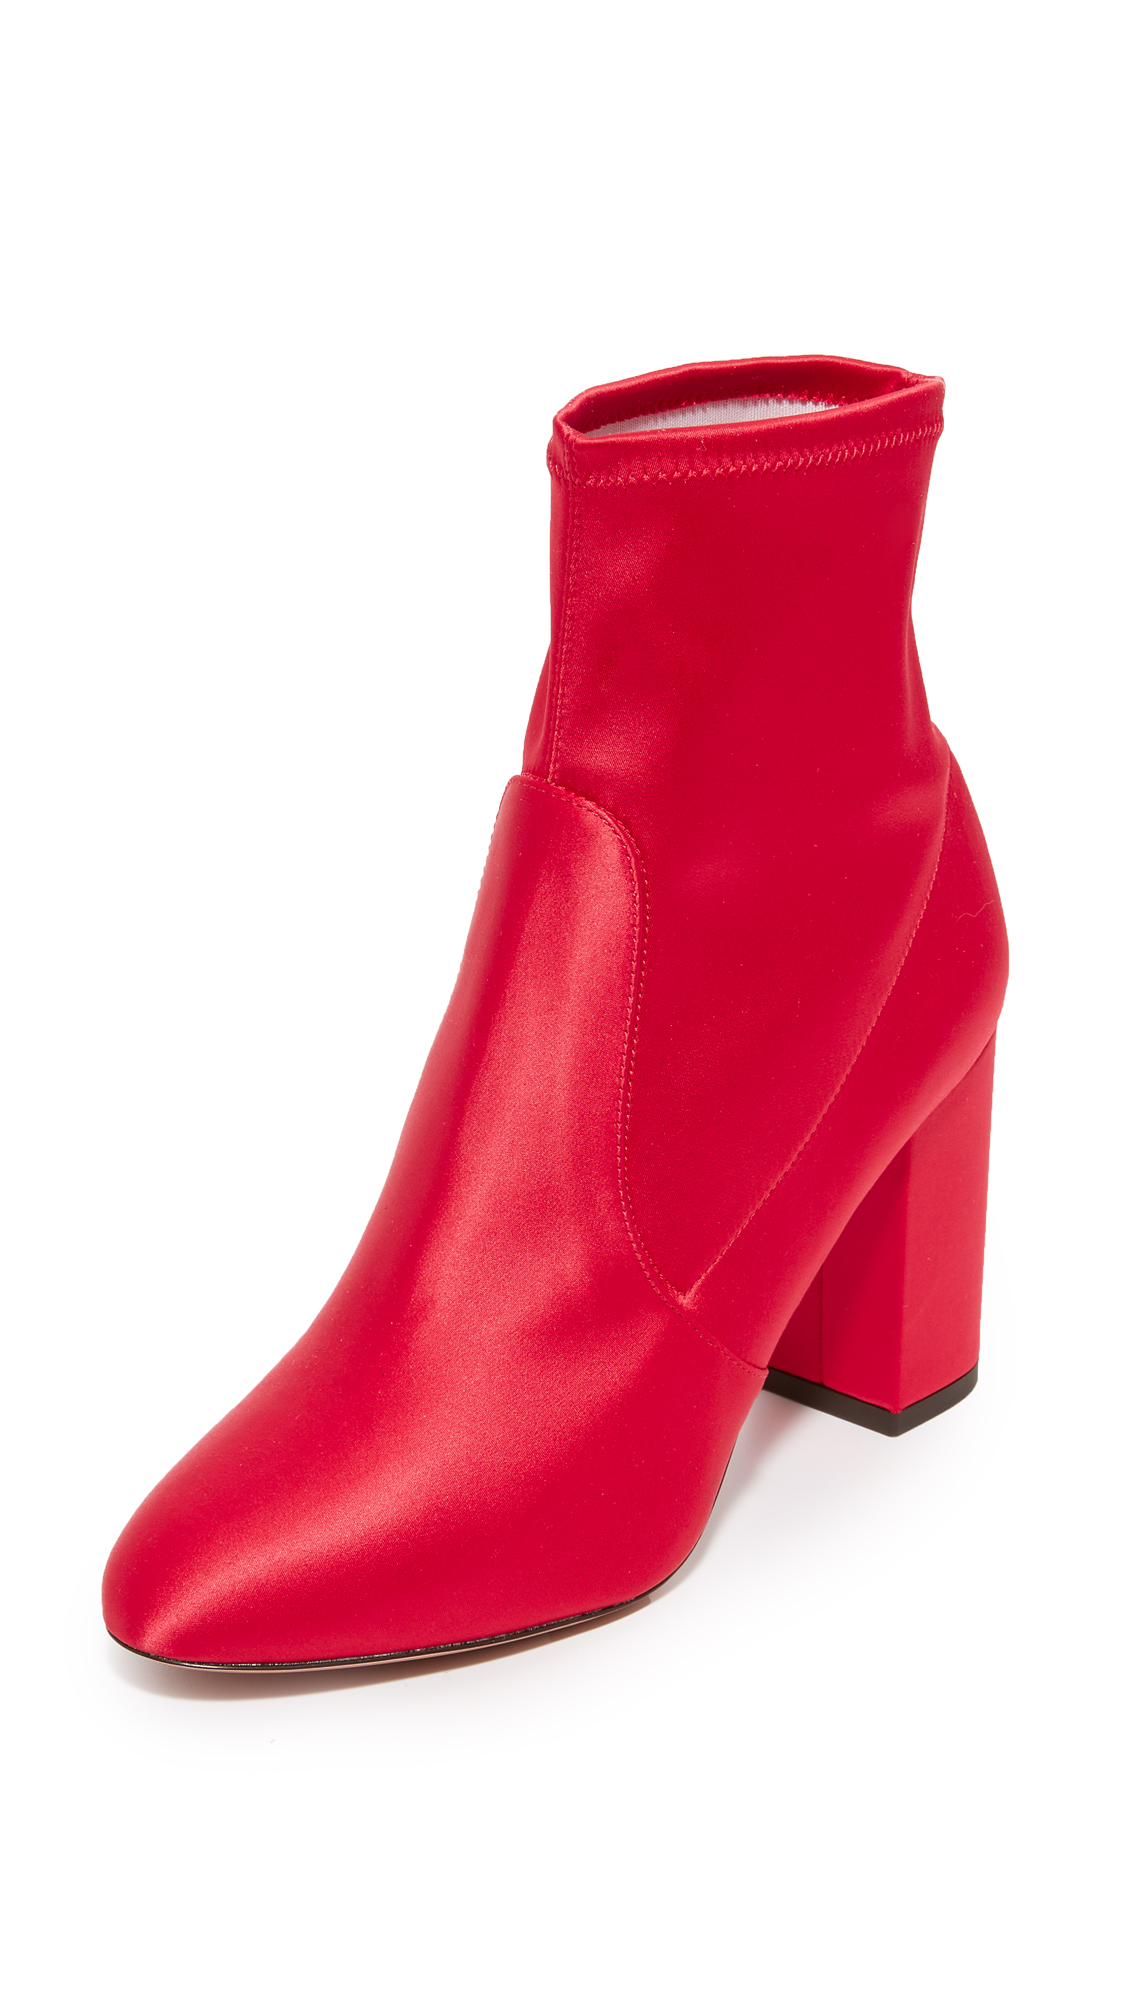 Aquazzura So Me 85 Booties - Spice Red